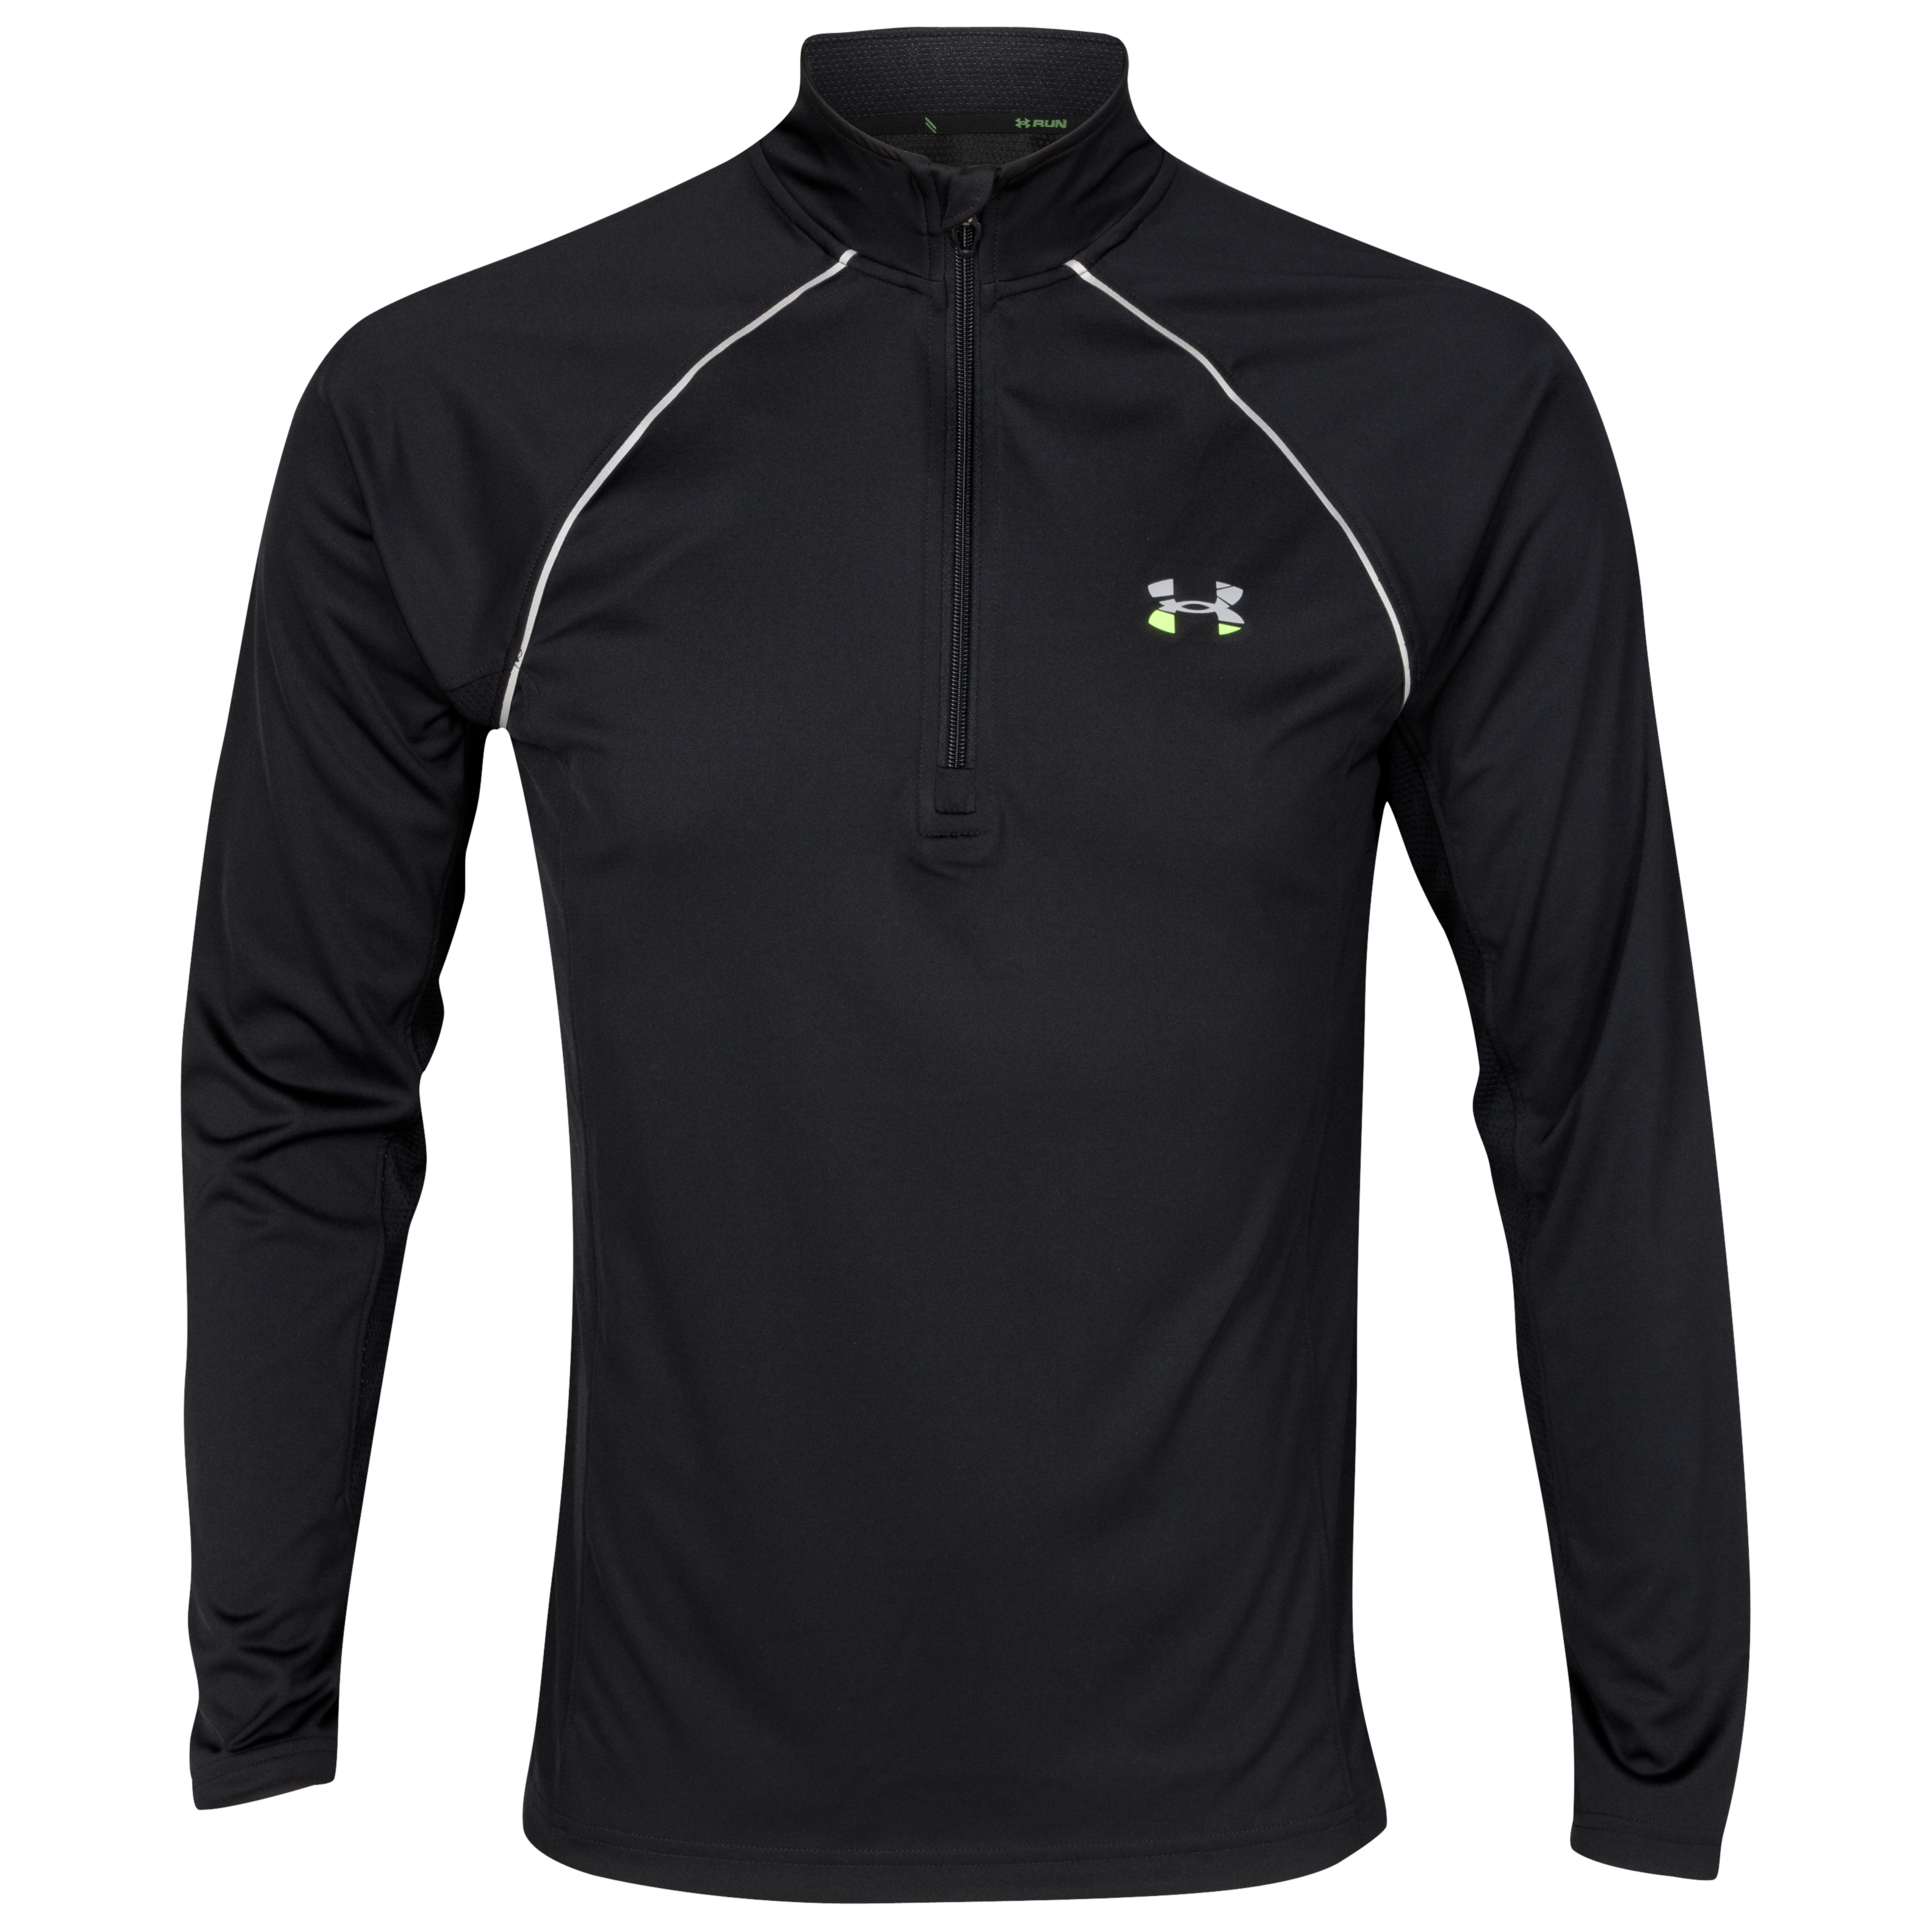 Under Armour Run 1/4 Zip Top - Black